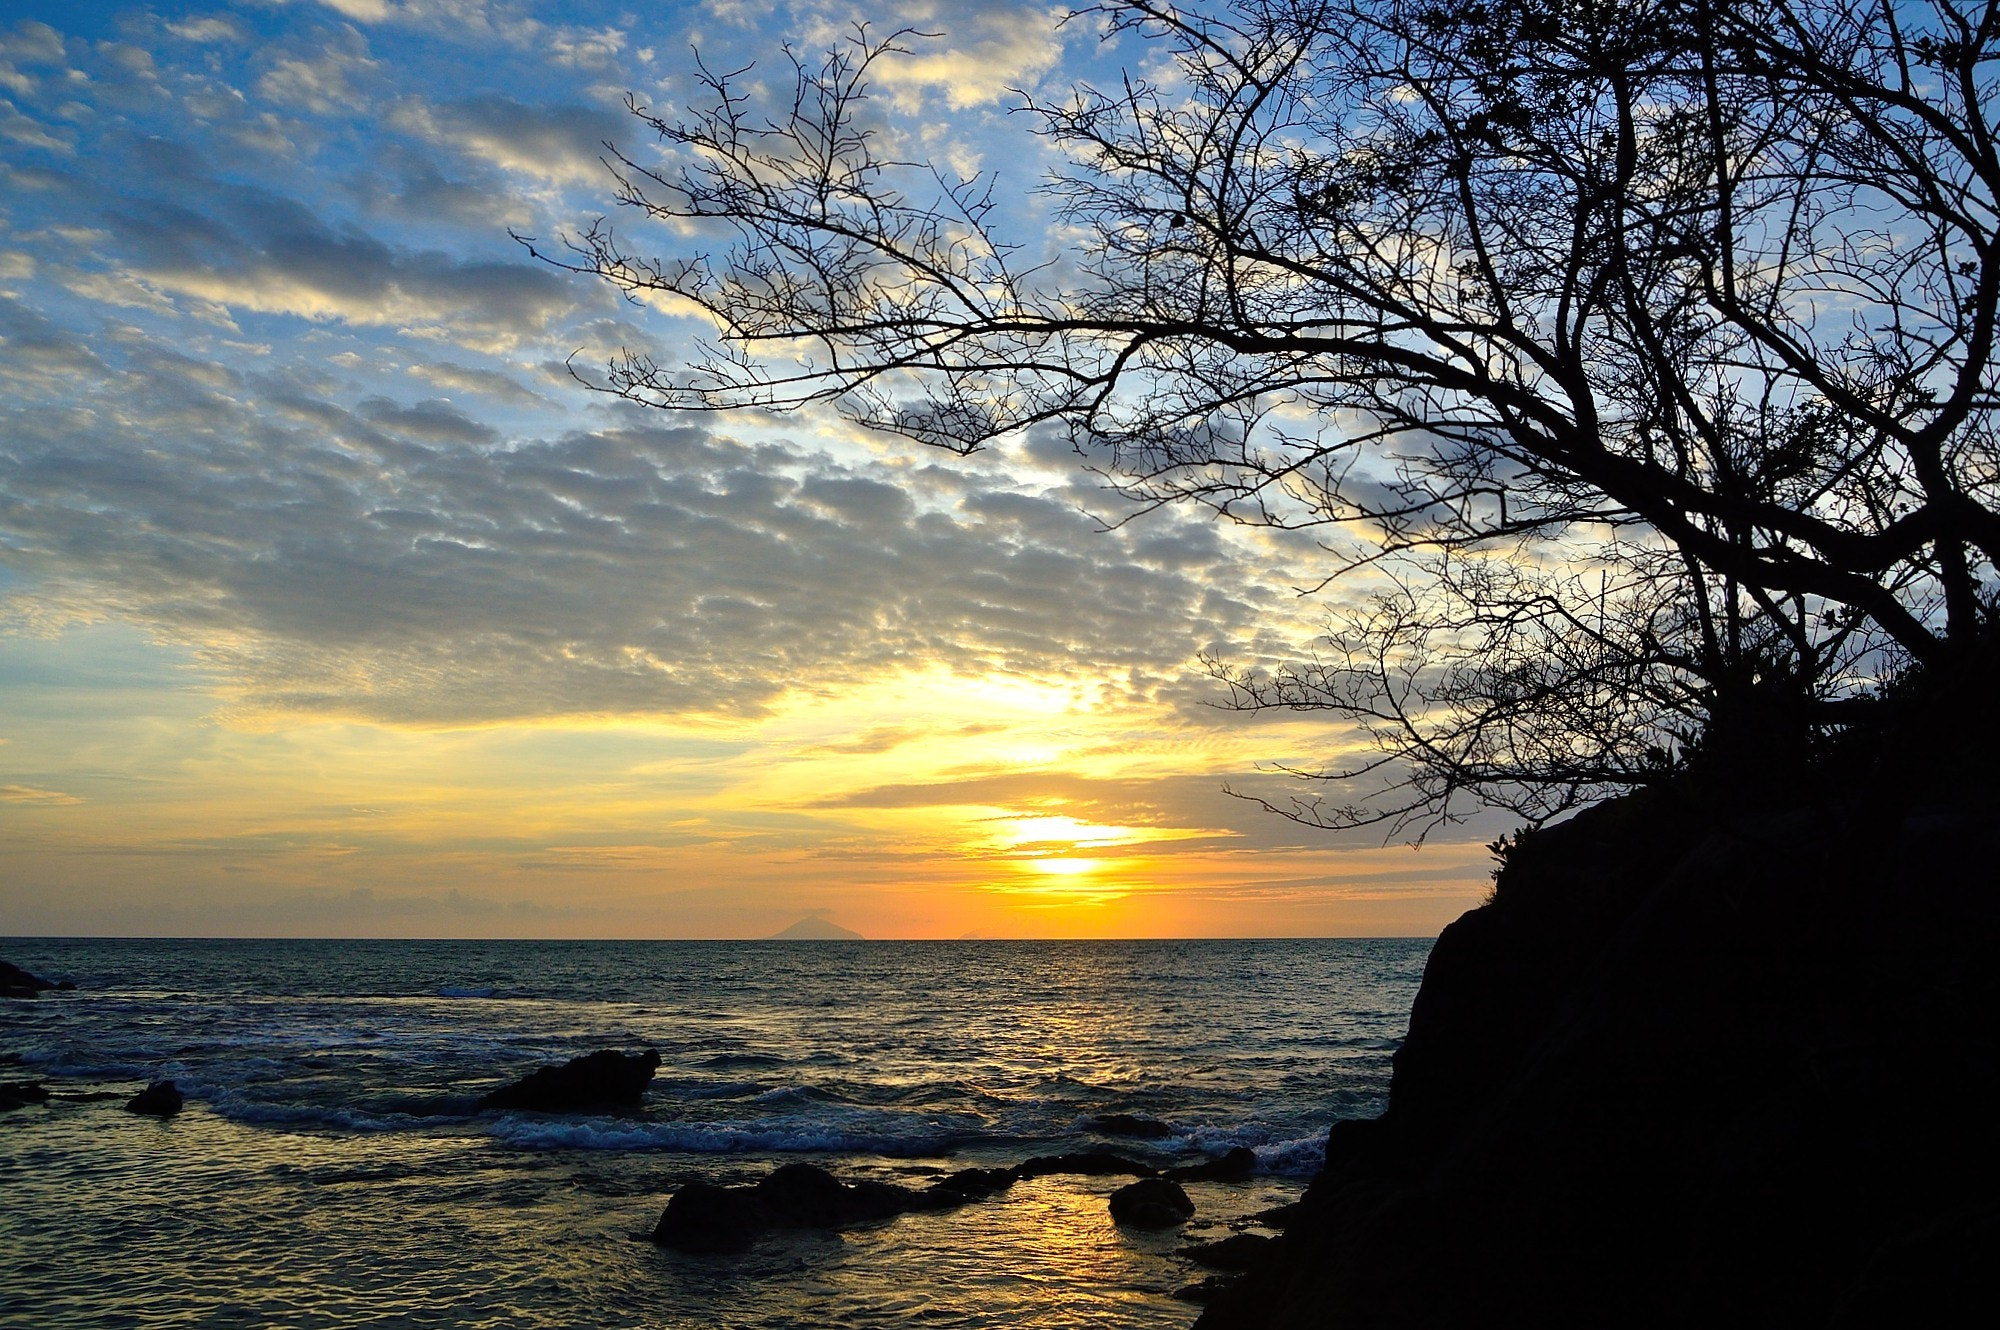 Photograph Sunset #1 by Mang Koez on 500px